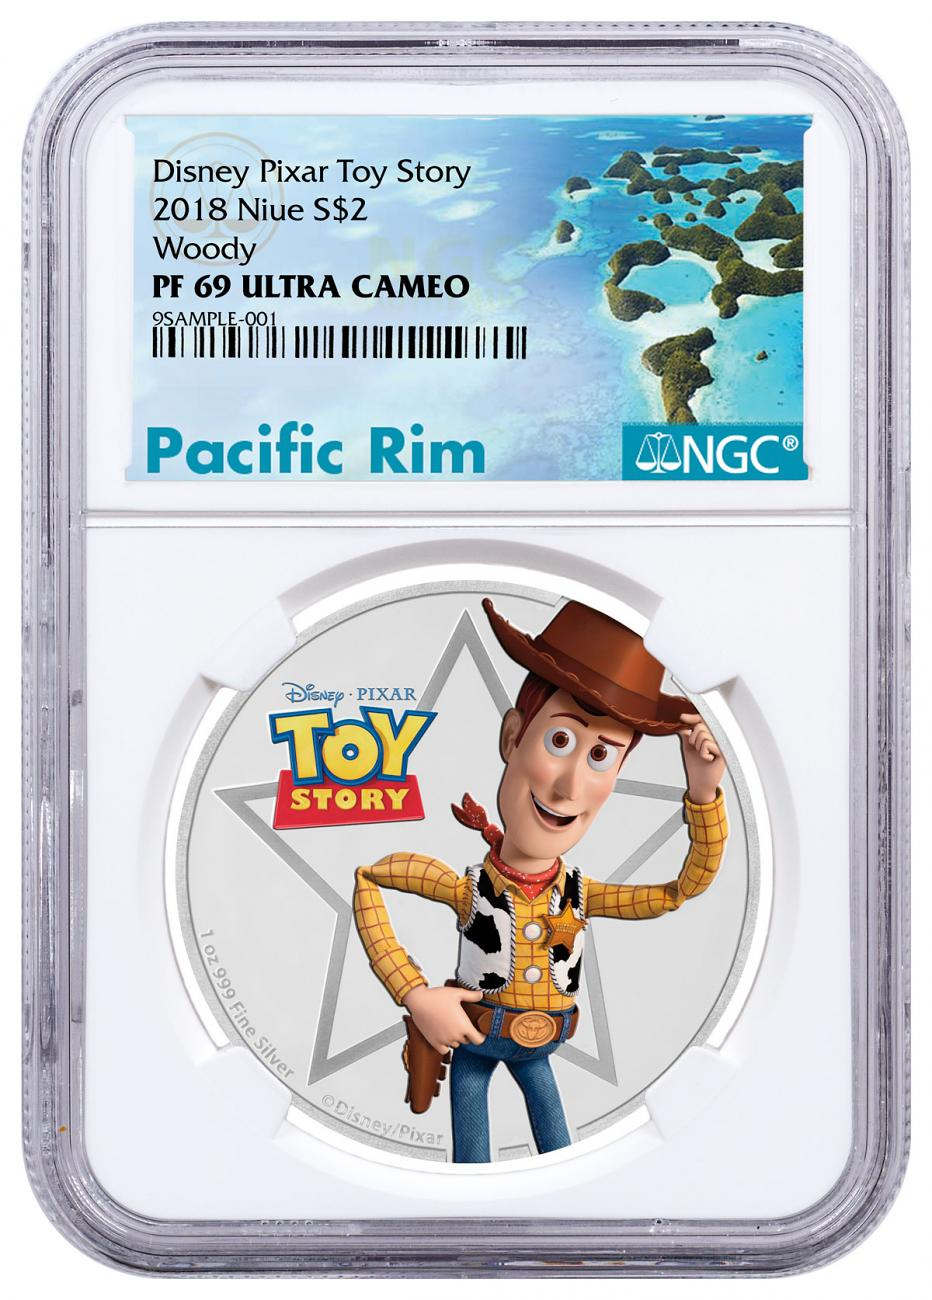 2018 Niue Disney Toy Story - Woody 1 oz Silver Colorized Proof $2 Coin NGC PF69 UC Exclusive Pacific Rim Label